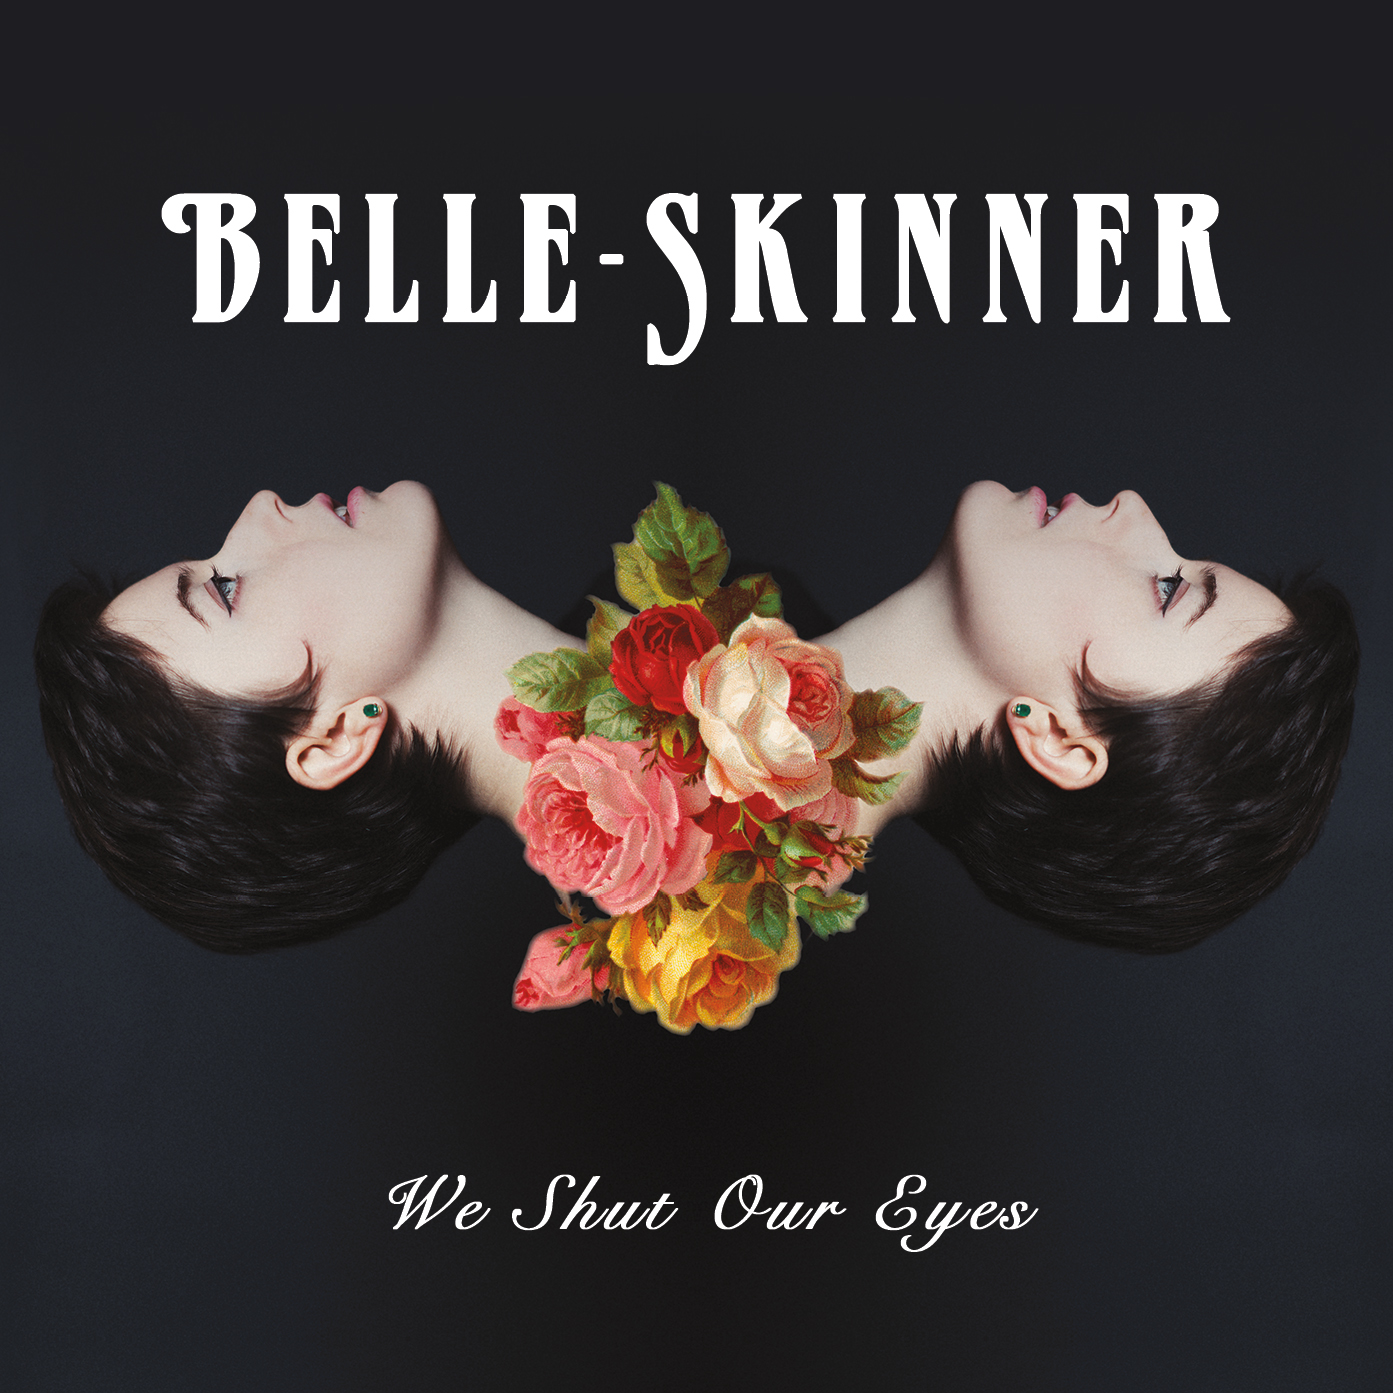 Belle-Skinner - We Shut Our Eyes